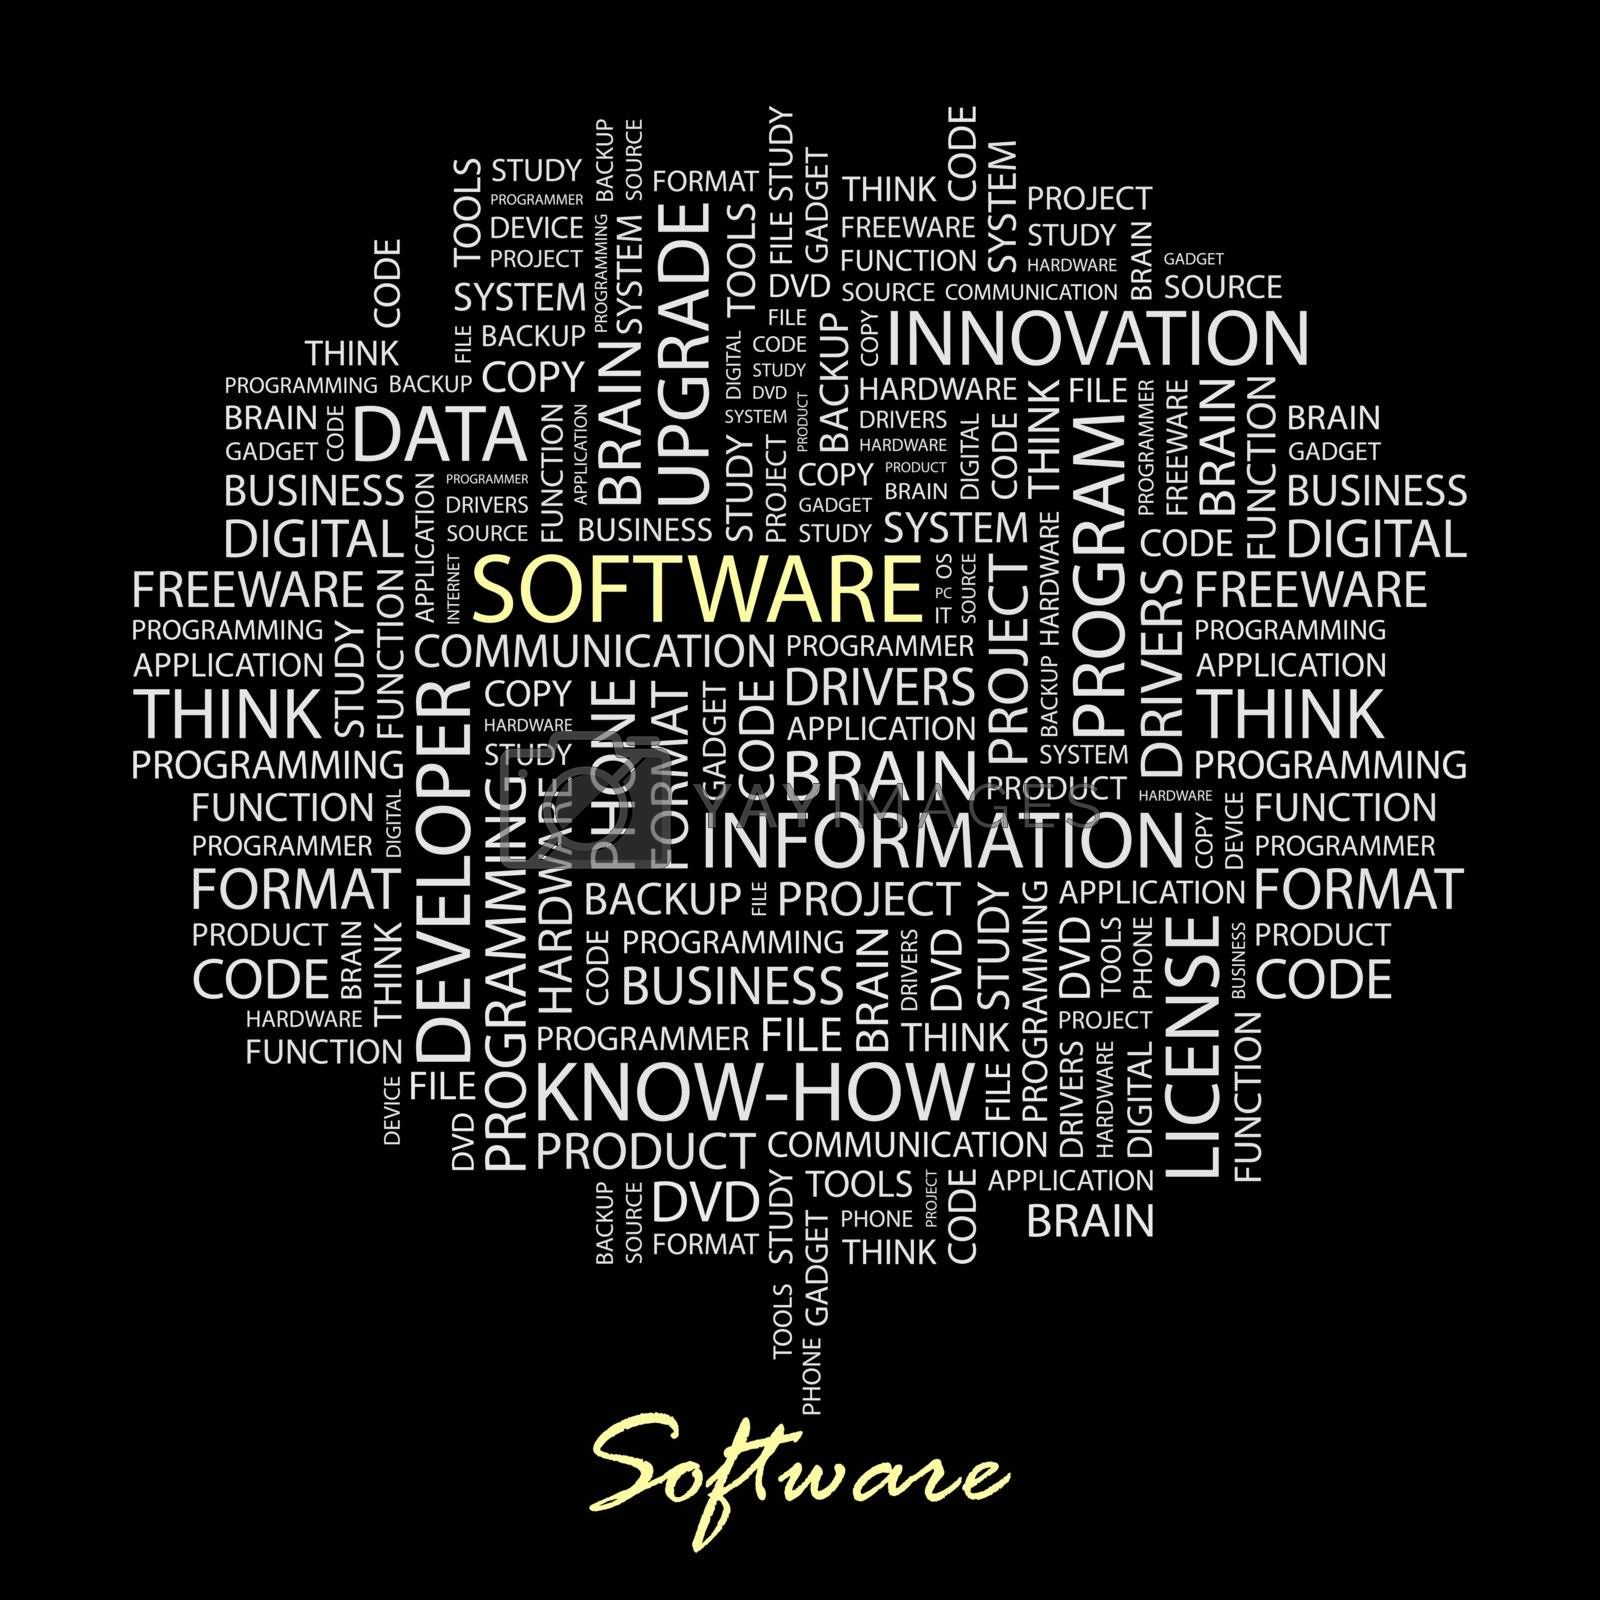 SOFTWARE. Concept illustration. Graphic tag collection. Wordcloud collage.